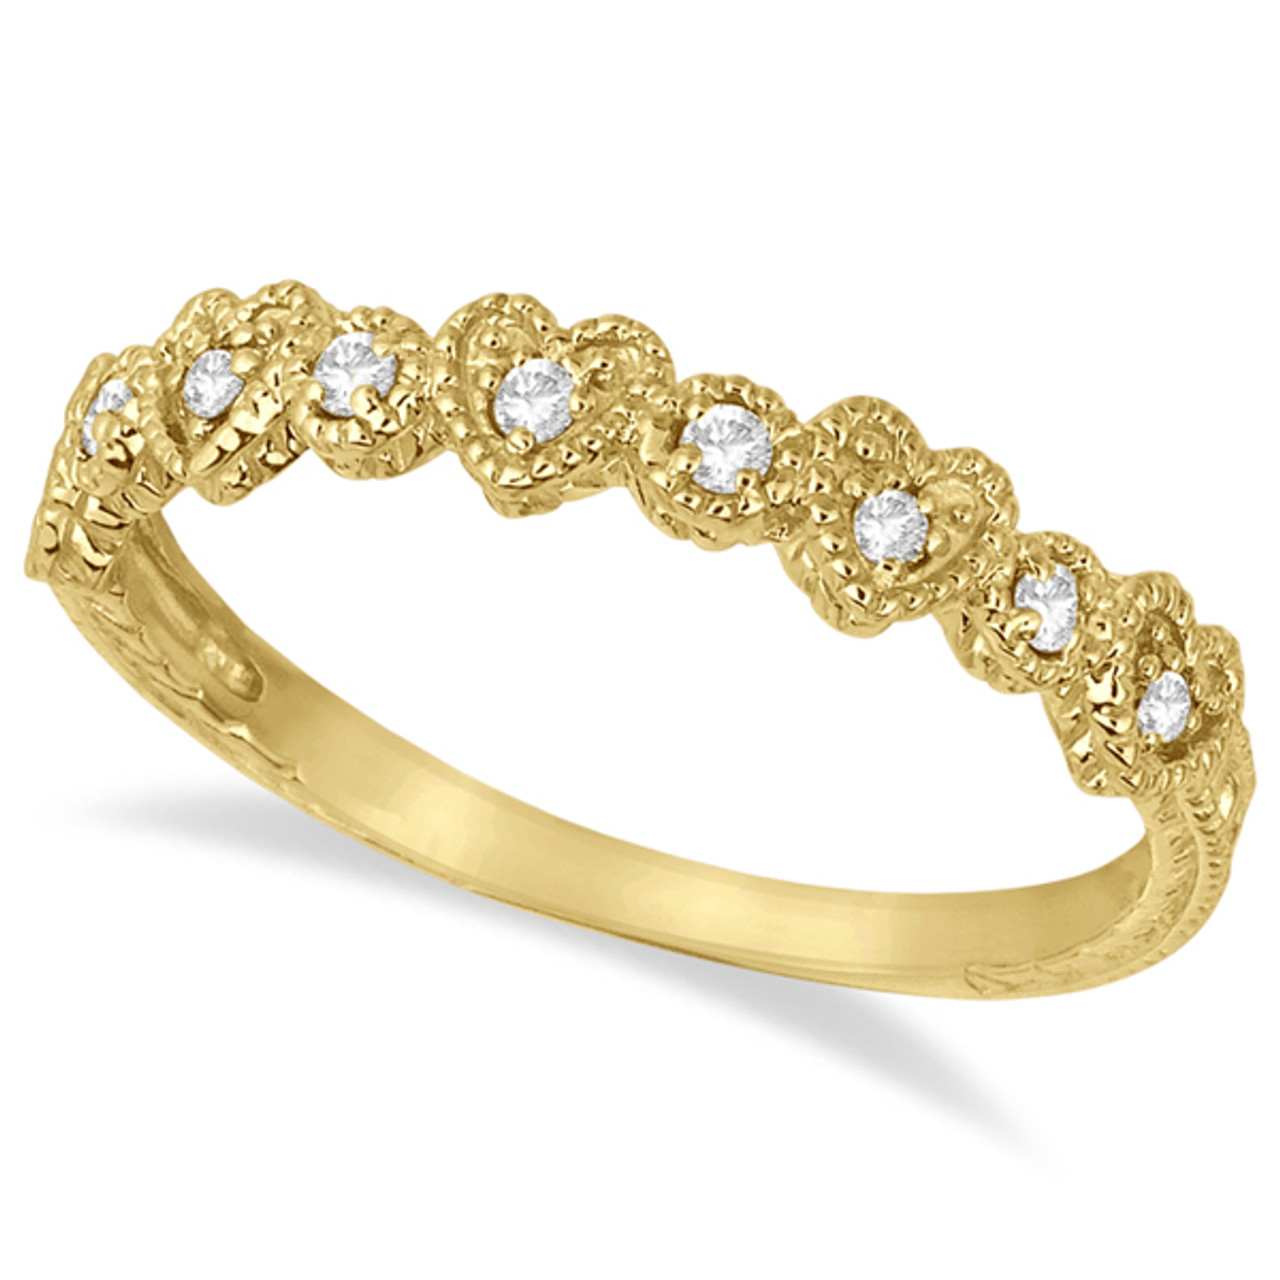 3c16d6109d8a0 14k Yellow Gold Pave Set Heart Design Diamond Ring Band (0.15ct)